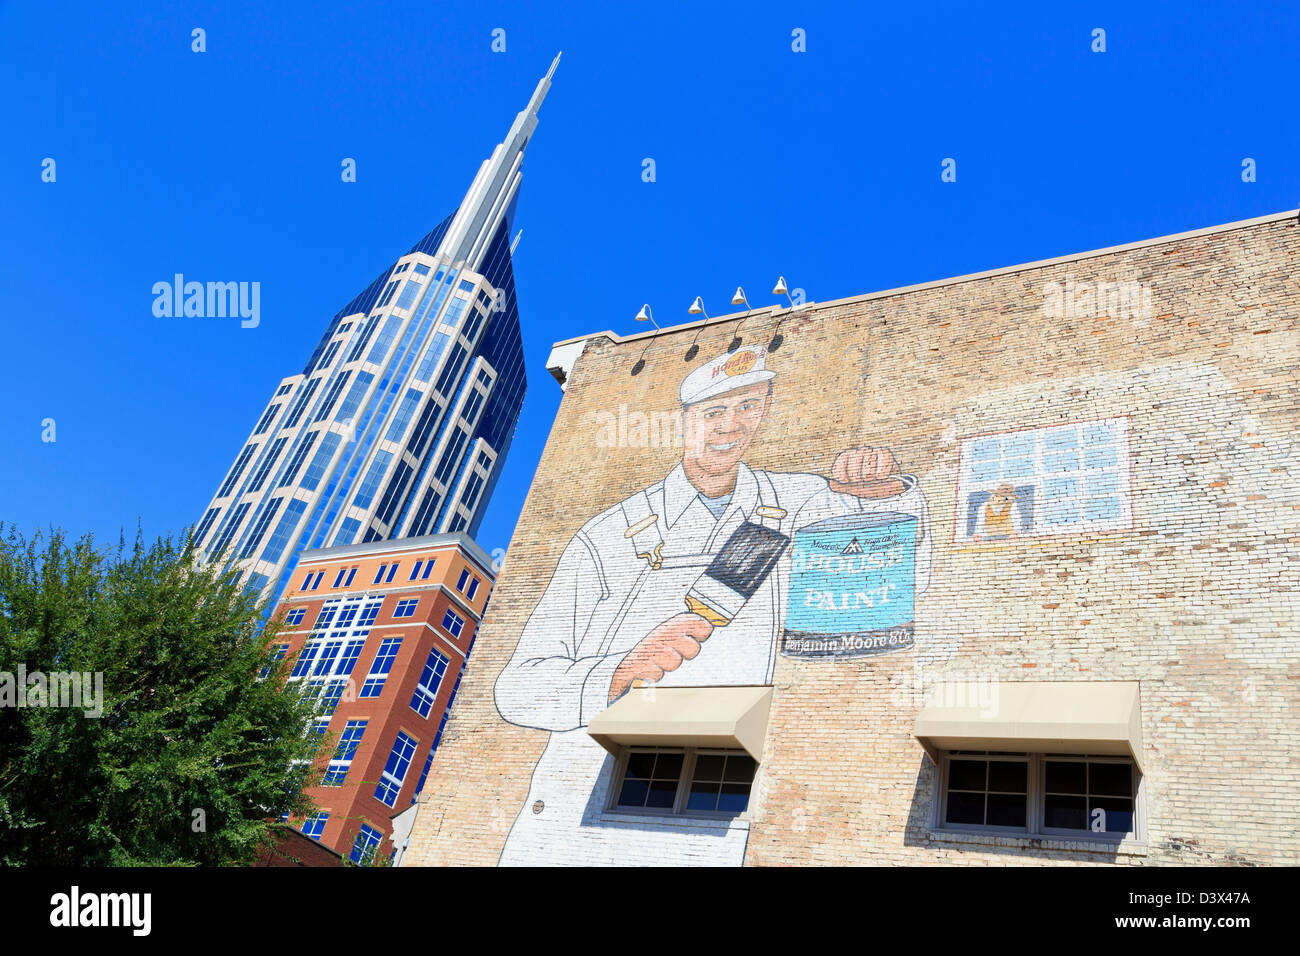 333 Commerce Tower & mural,Nashville,Tennessee,USA - Stock Image